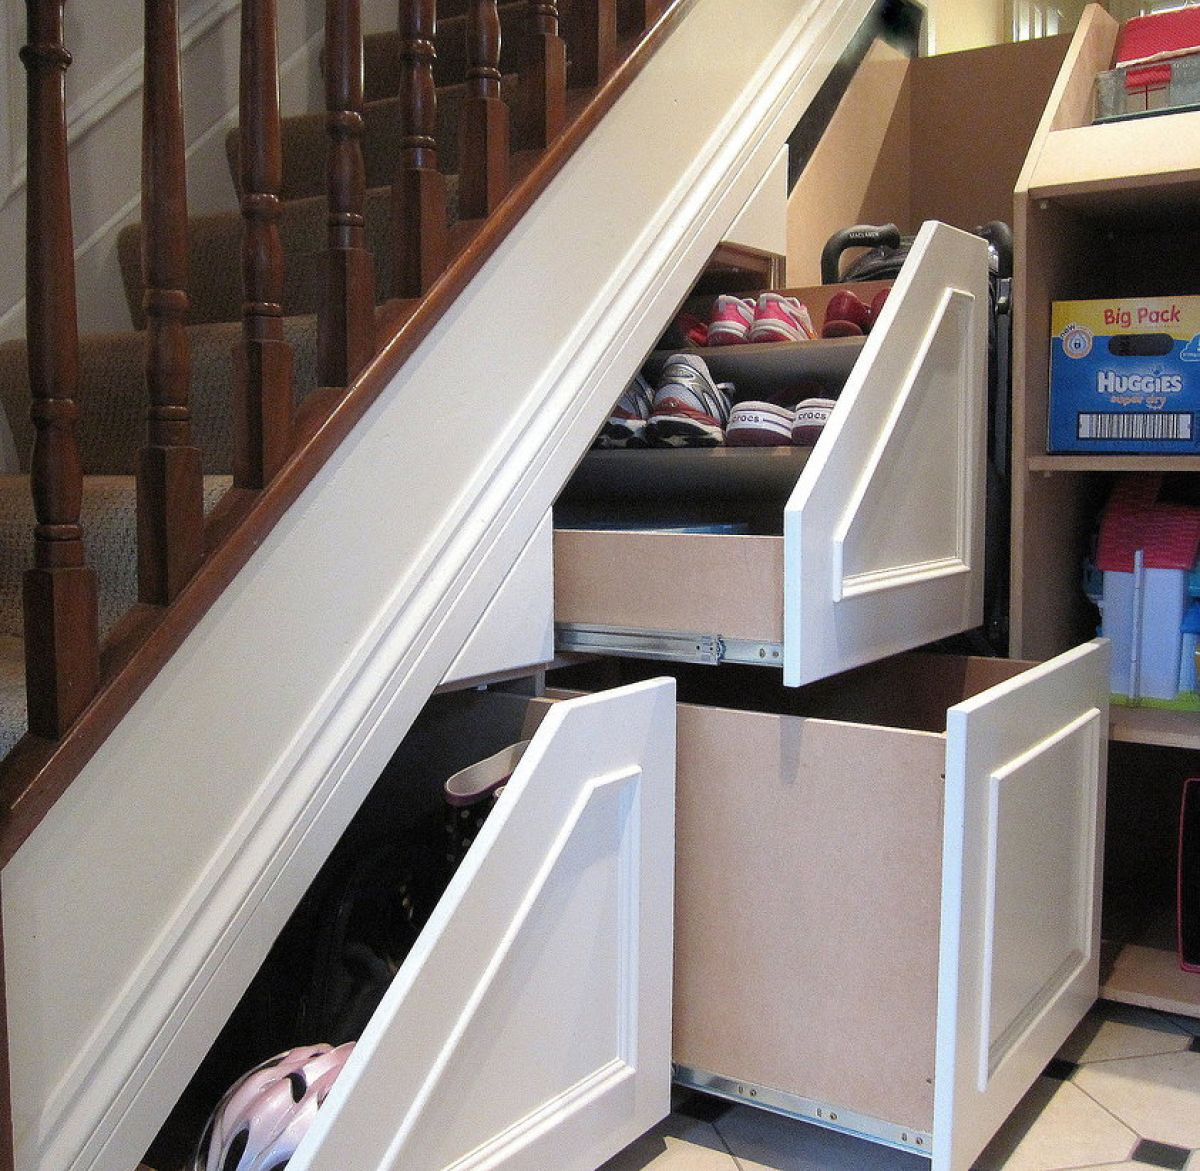 159_18-Space-Saving-Ideas-Perfect-for-Any-Small-Home_0-f (2)